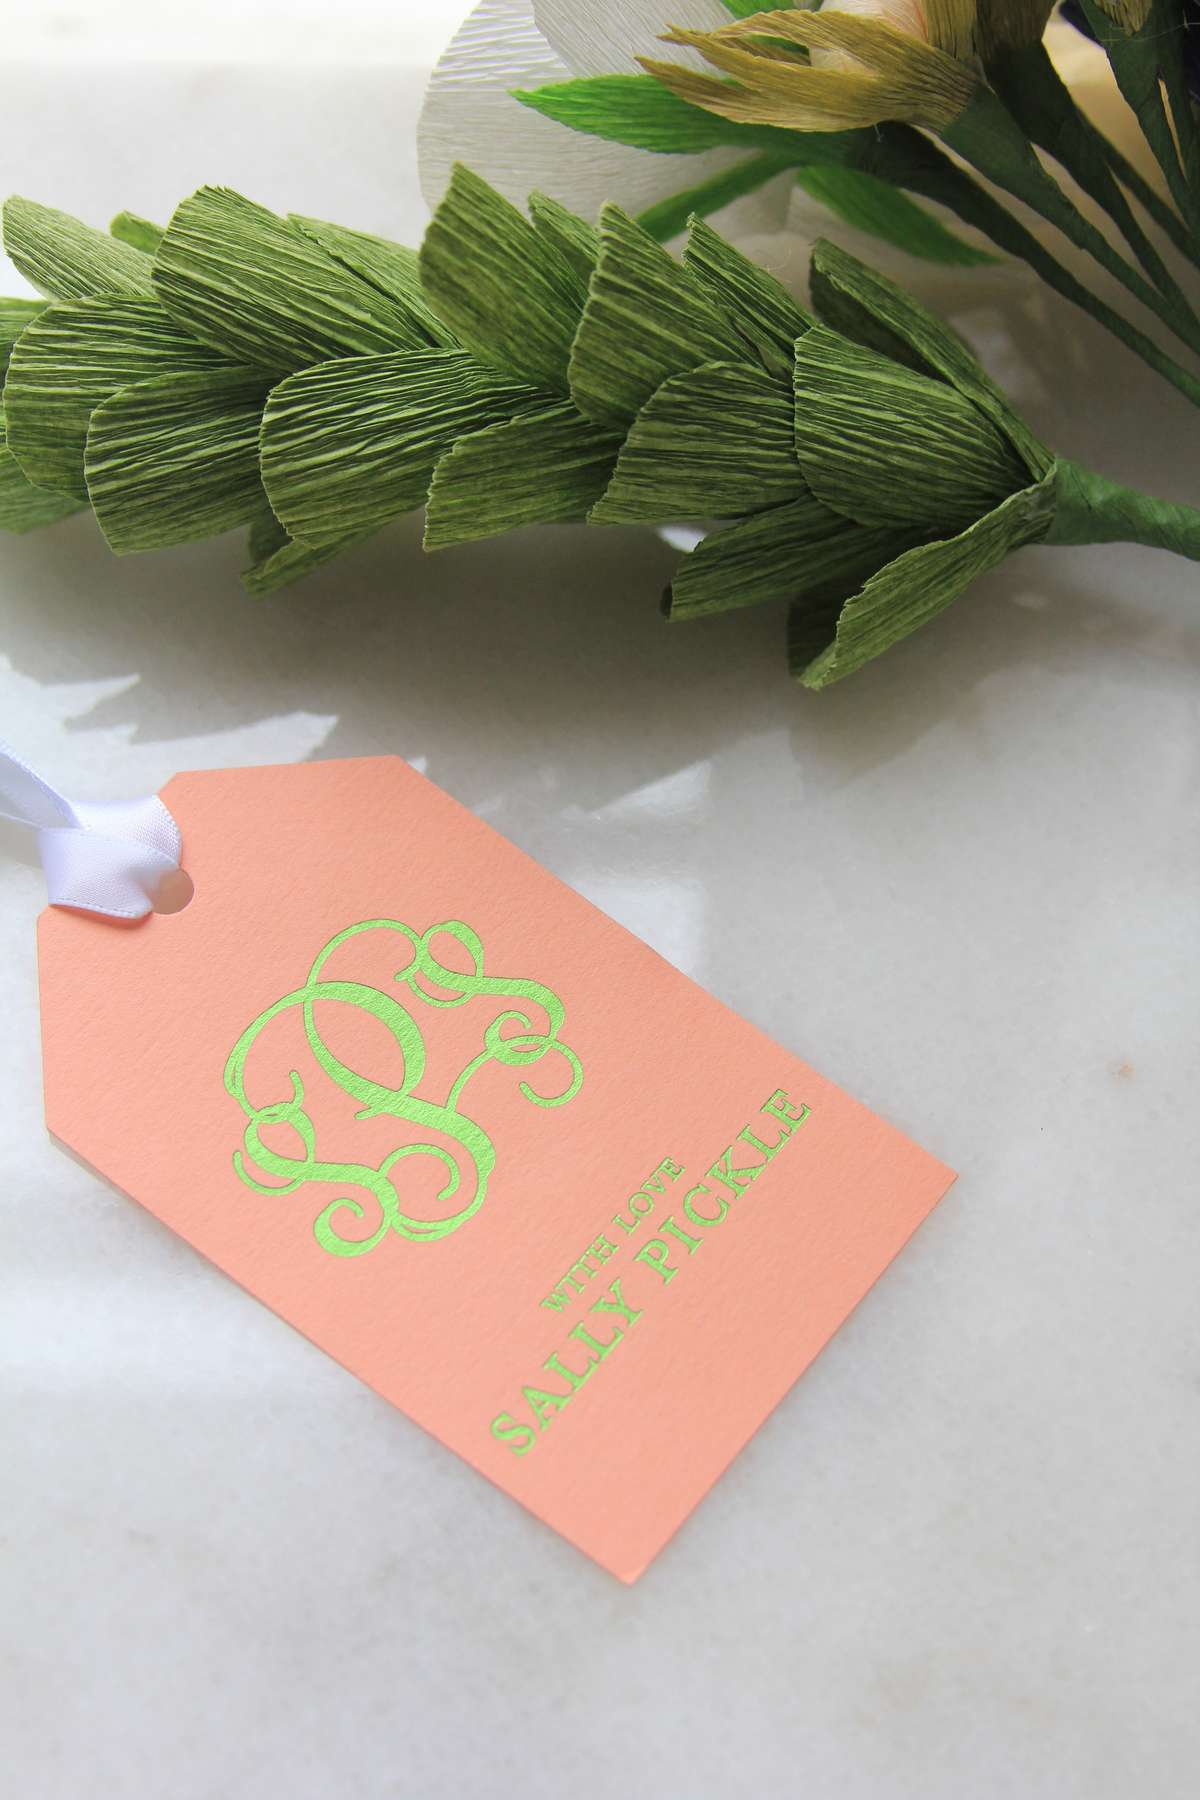 personalized gift tags for wedding welcome gifts and wedding favors